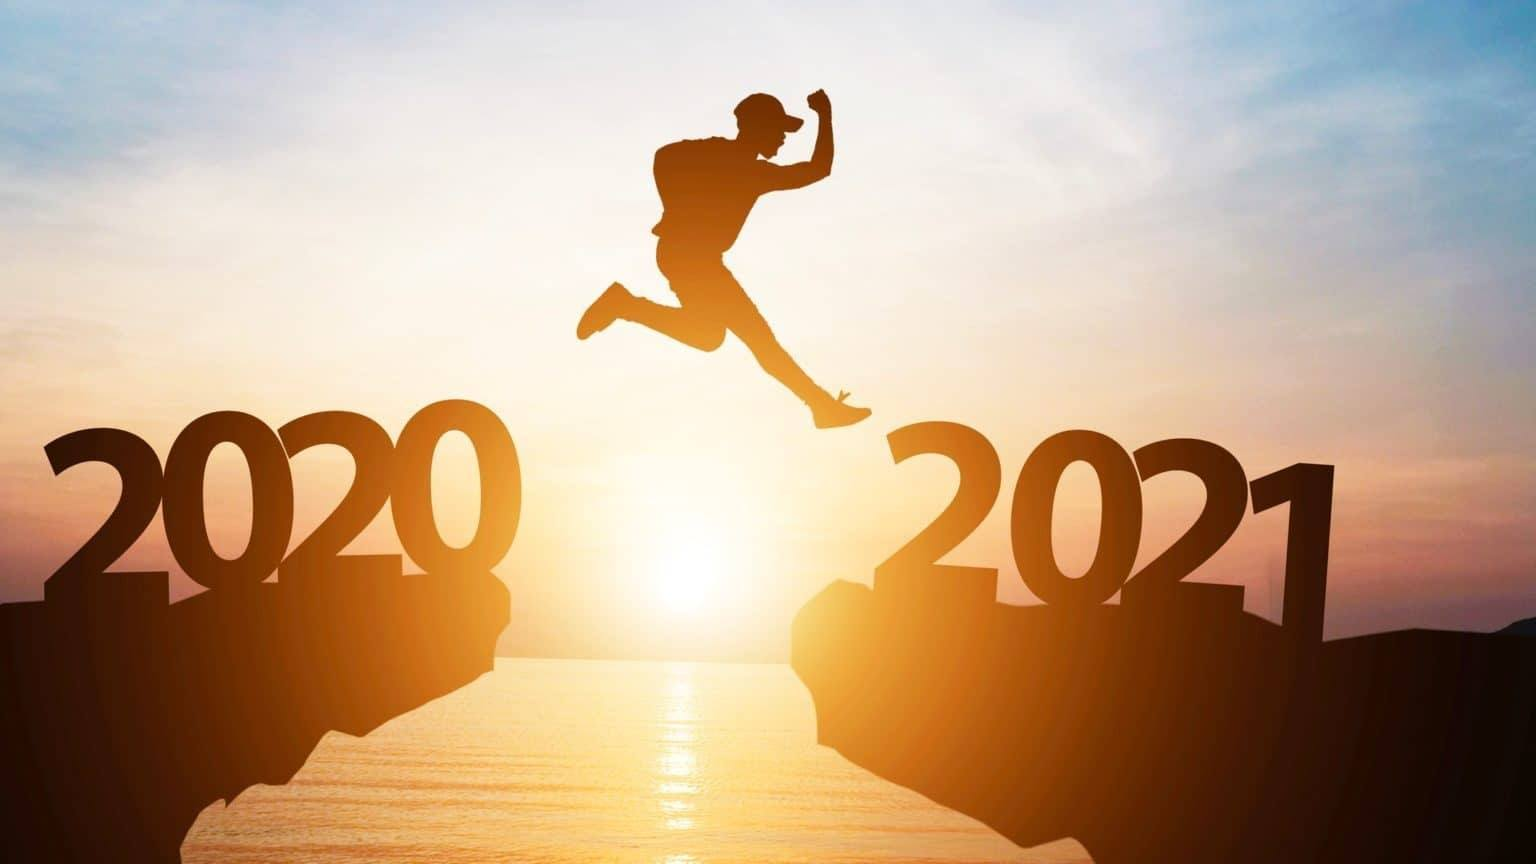 Leaping into 2021 with our new referral program